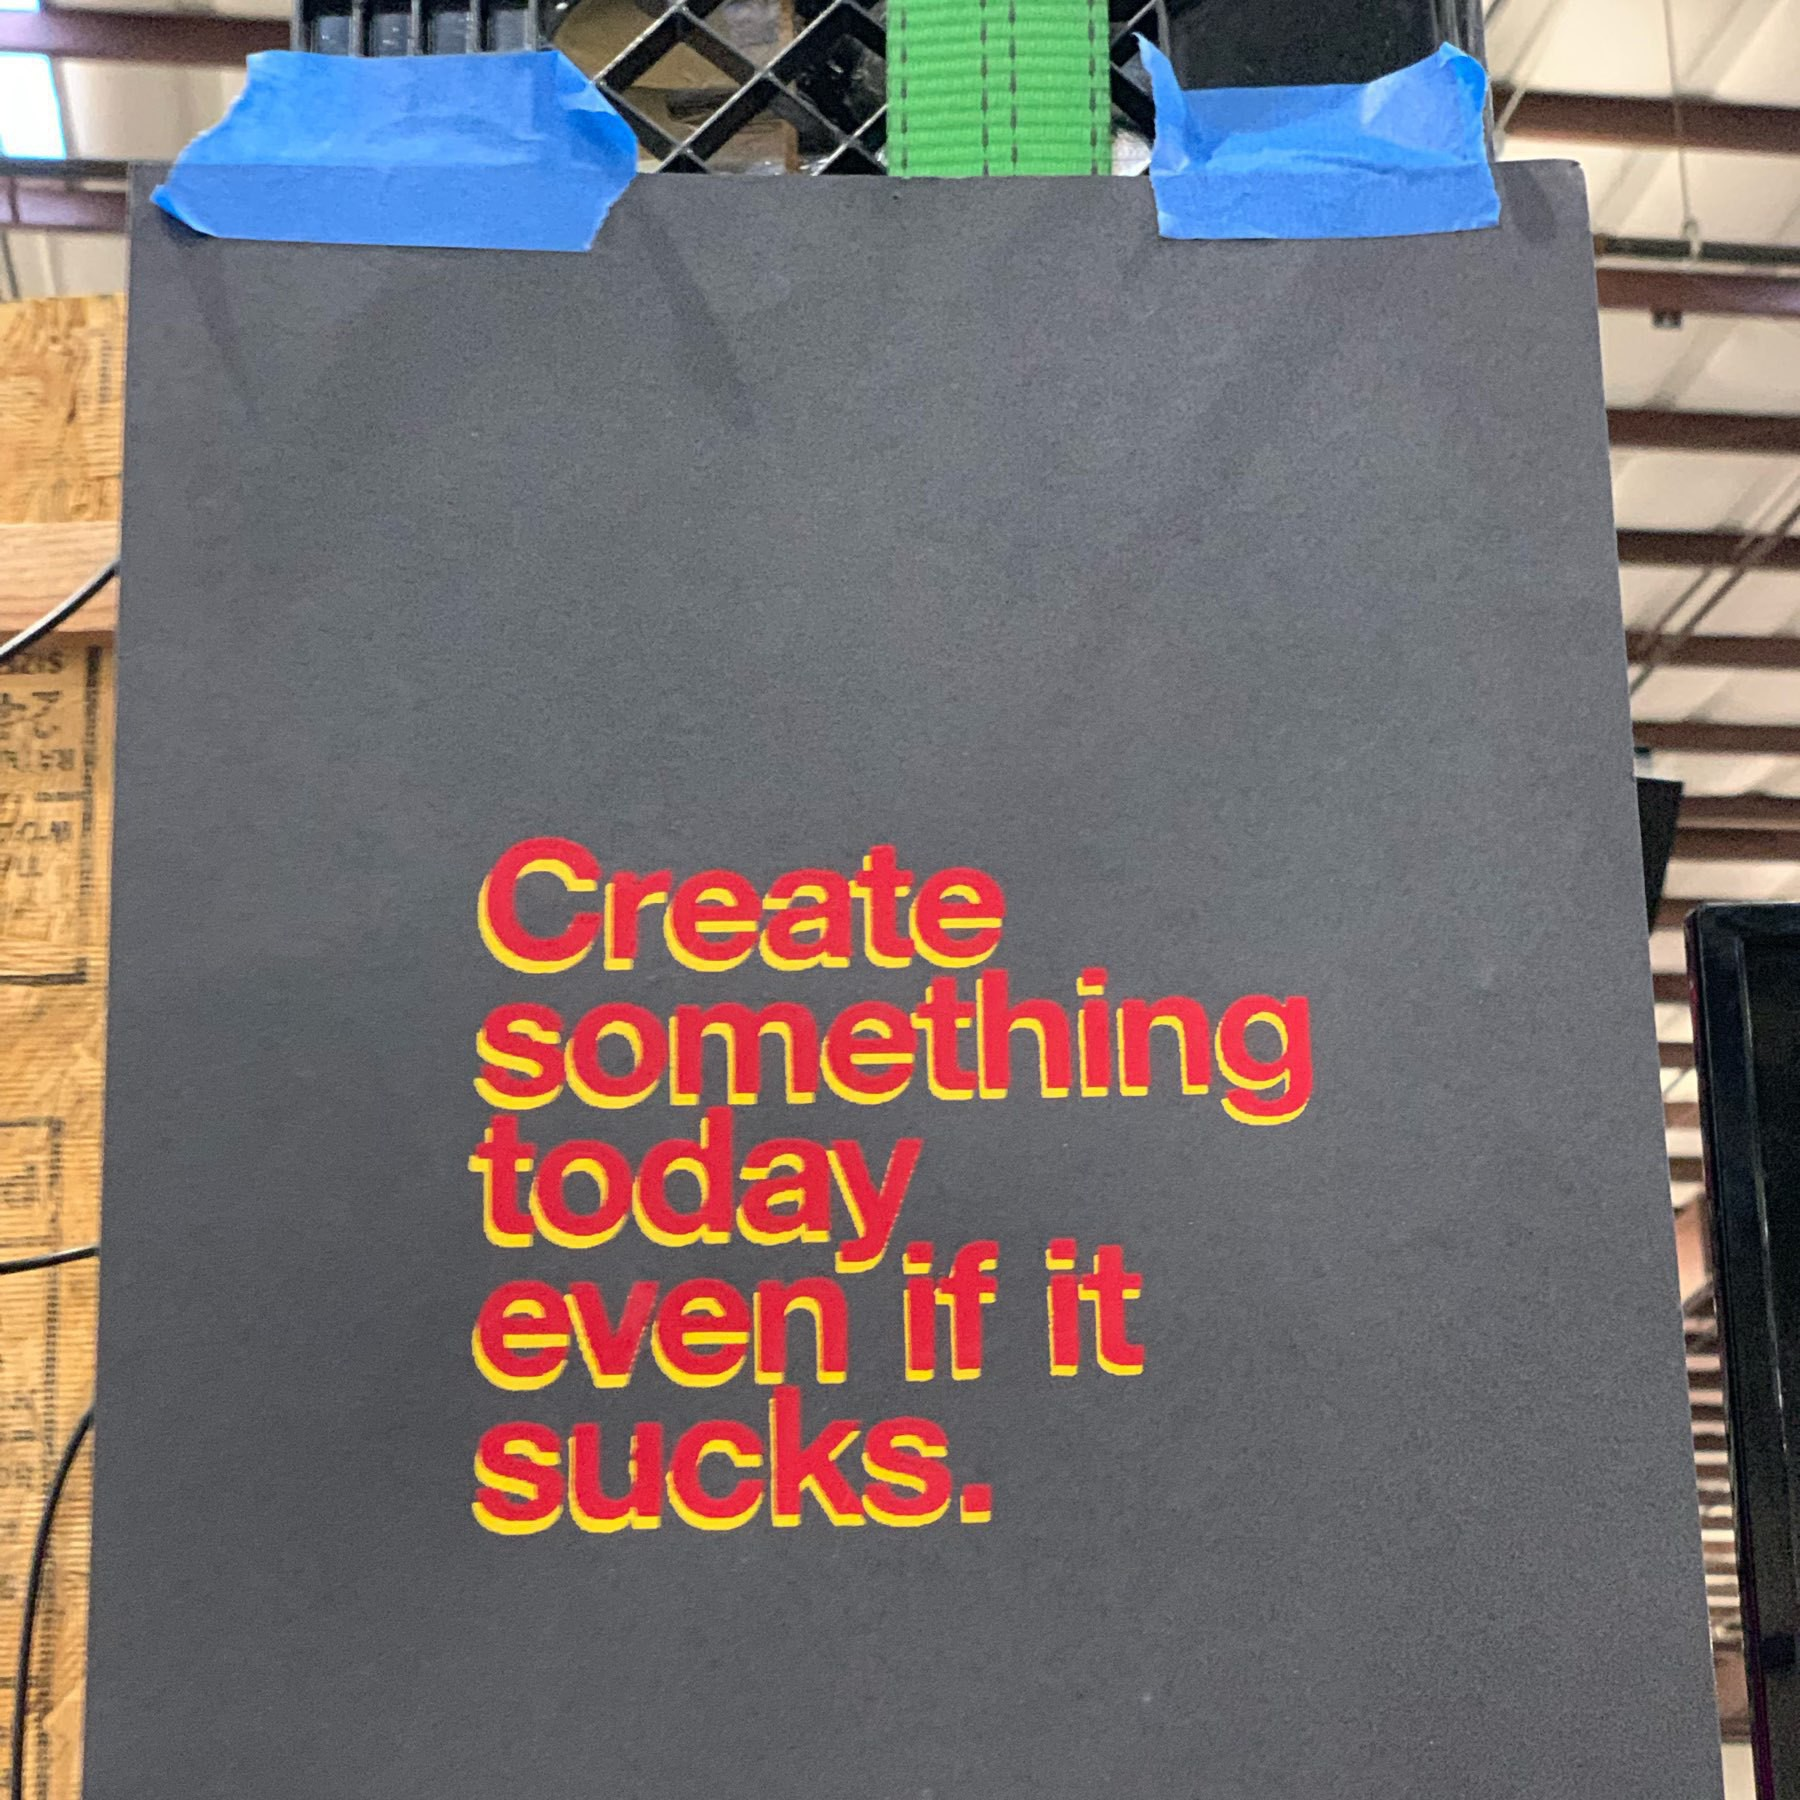 A letterpress-printed poster reading 'Create something today, even if it sucks.'